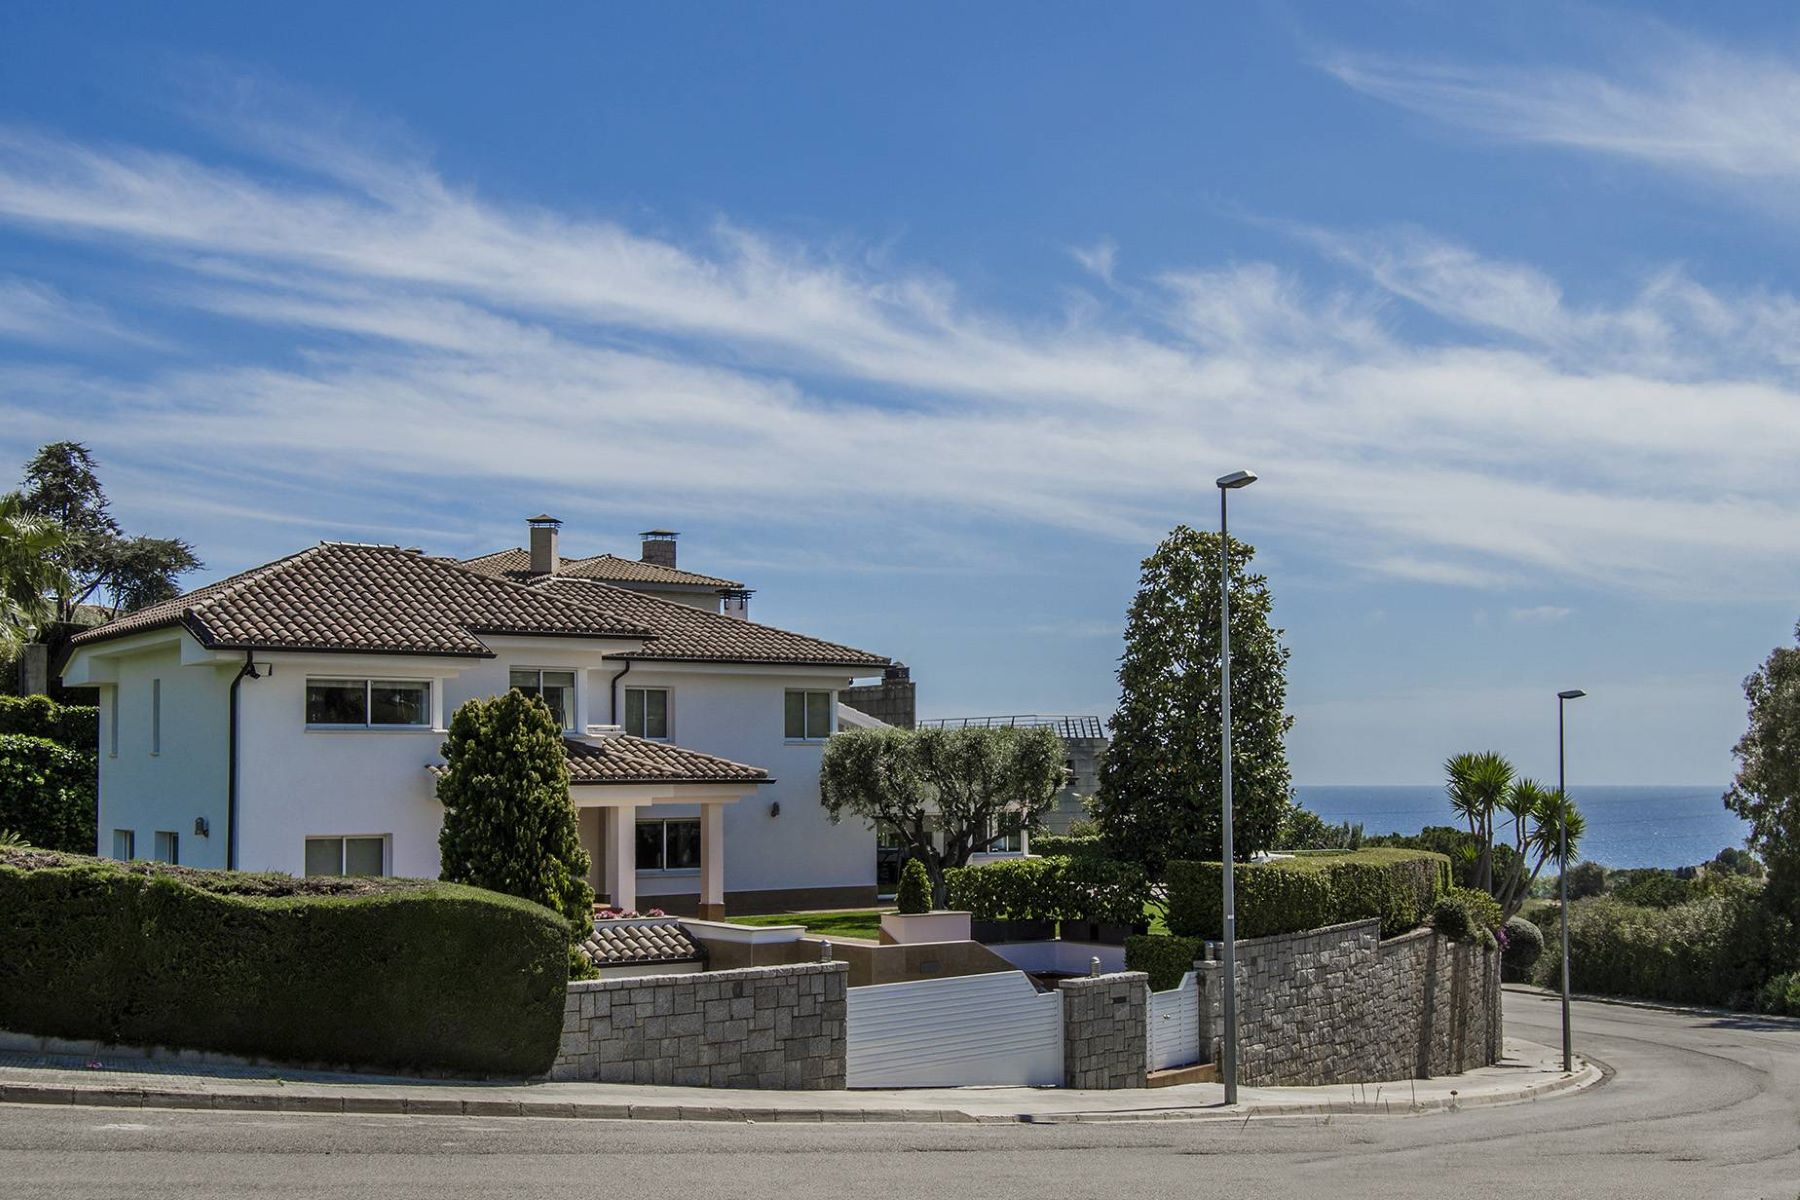 Single Family Home for Sale at Marvelous Villa in Can Teixidó Alella, Barcelona, 08328 Spain